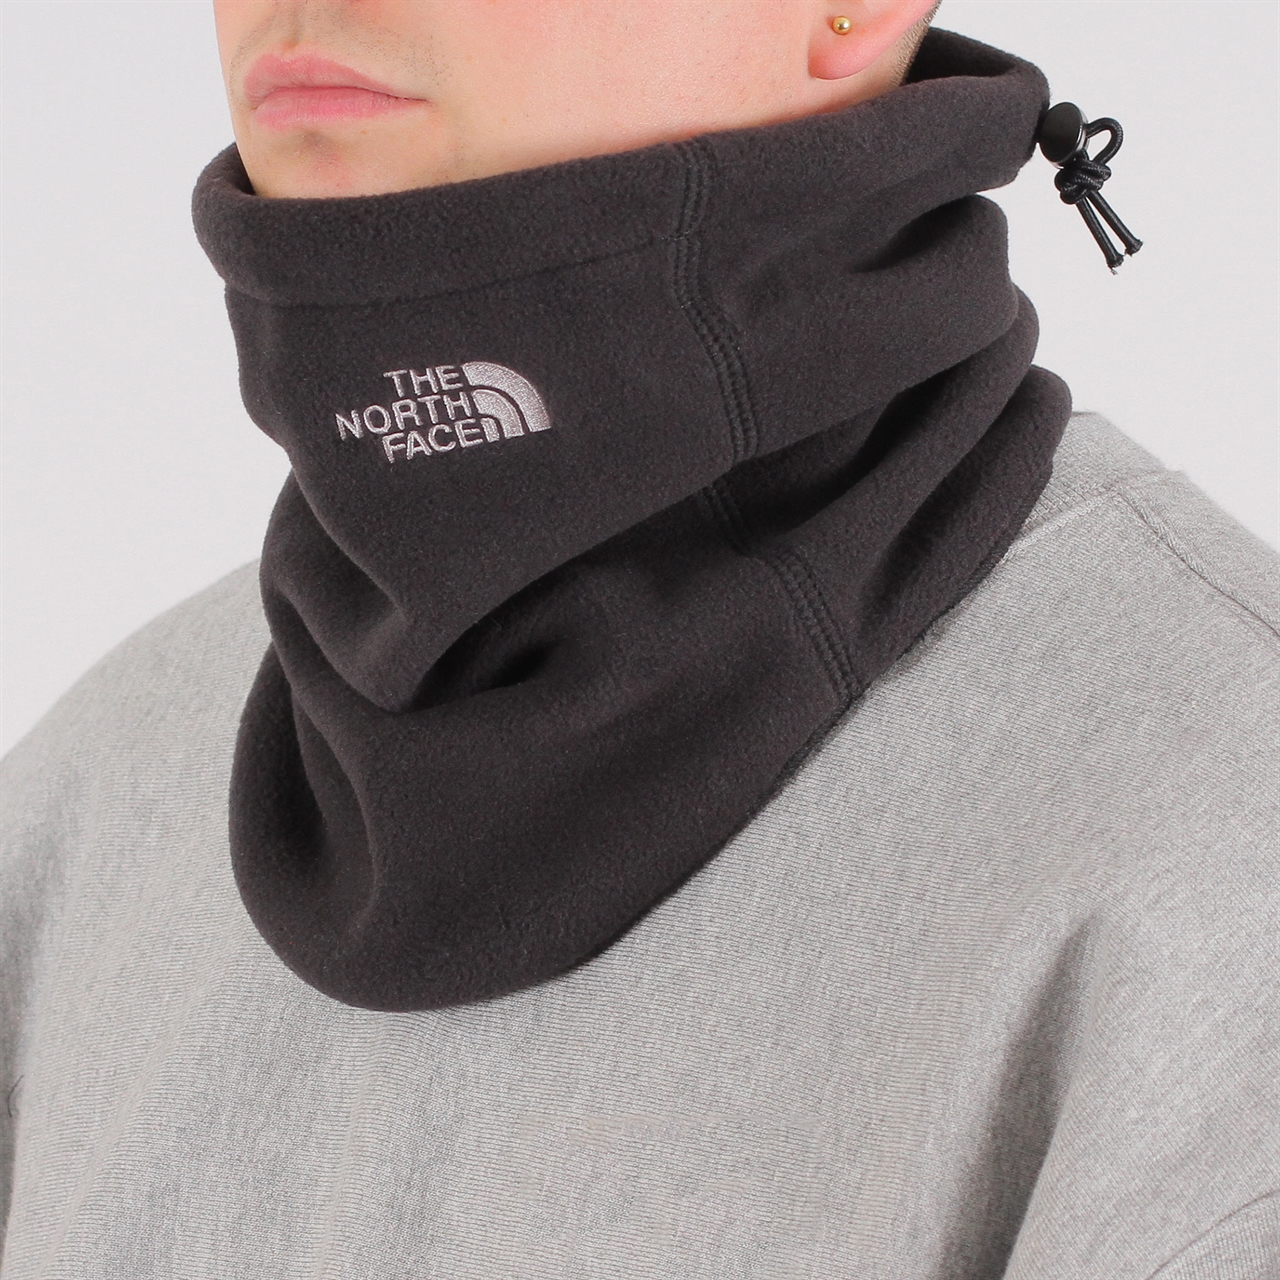 neck north face